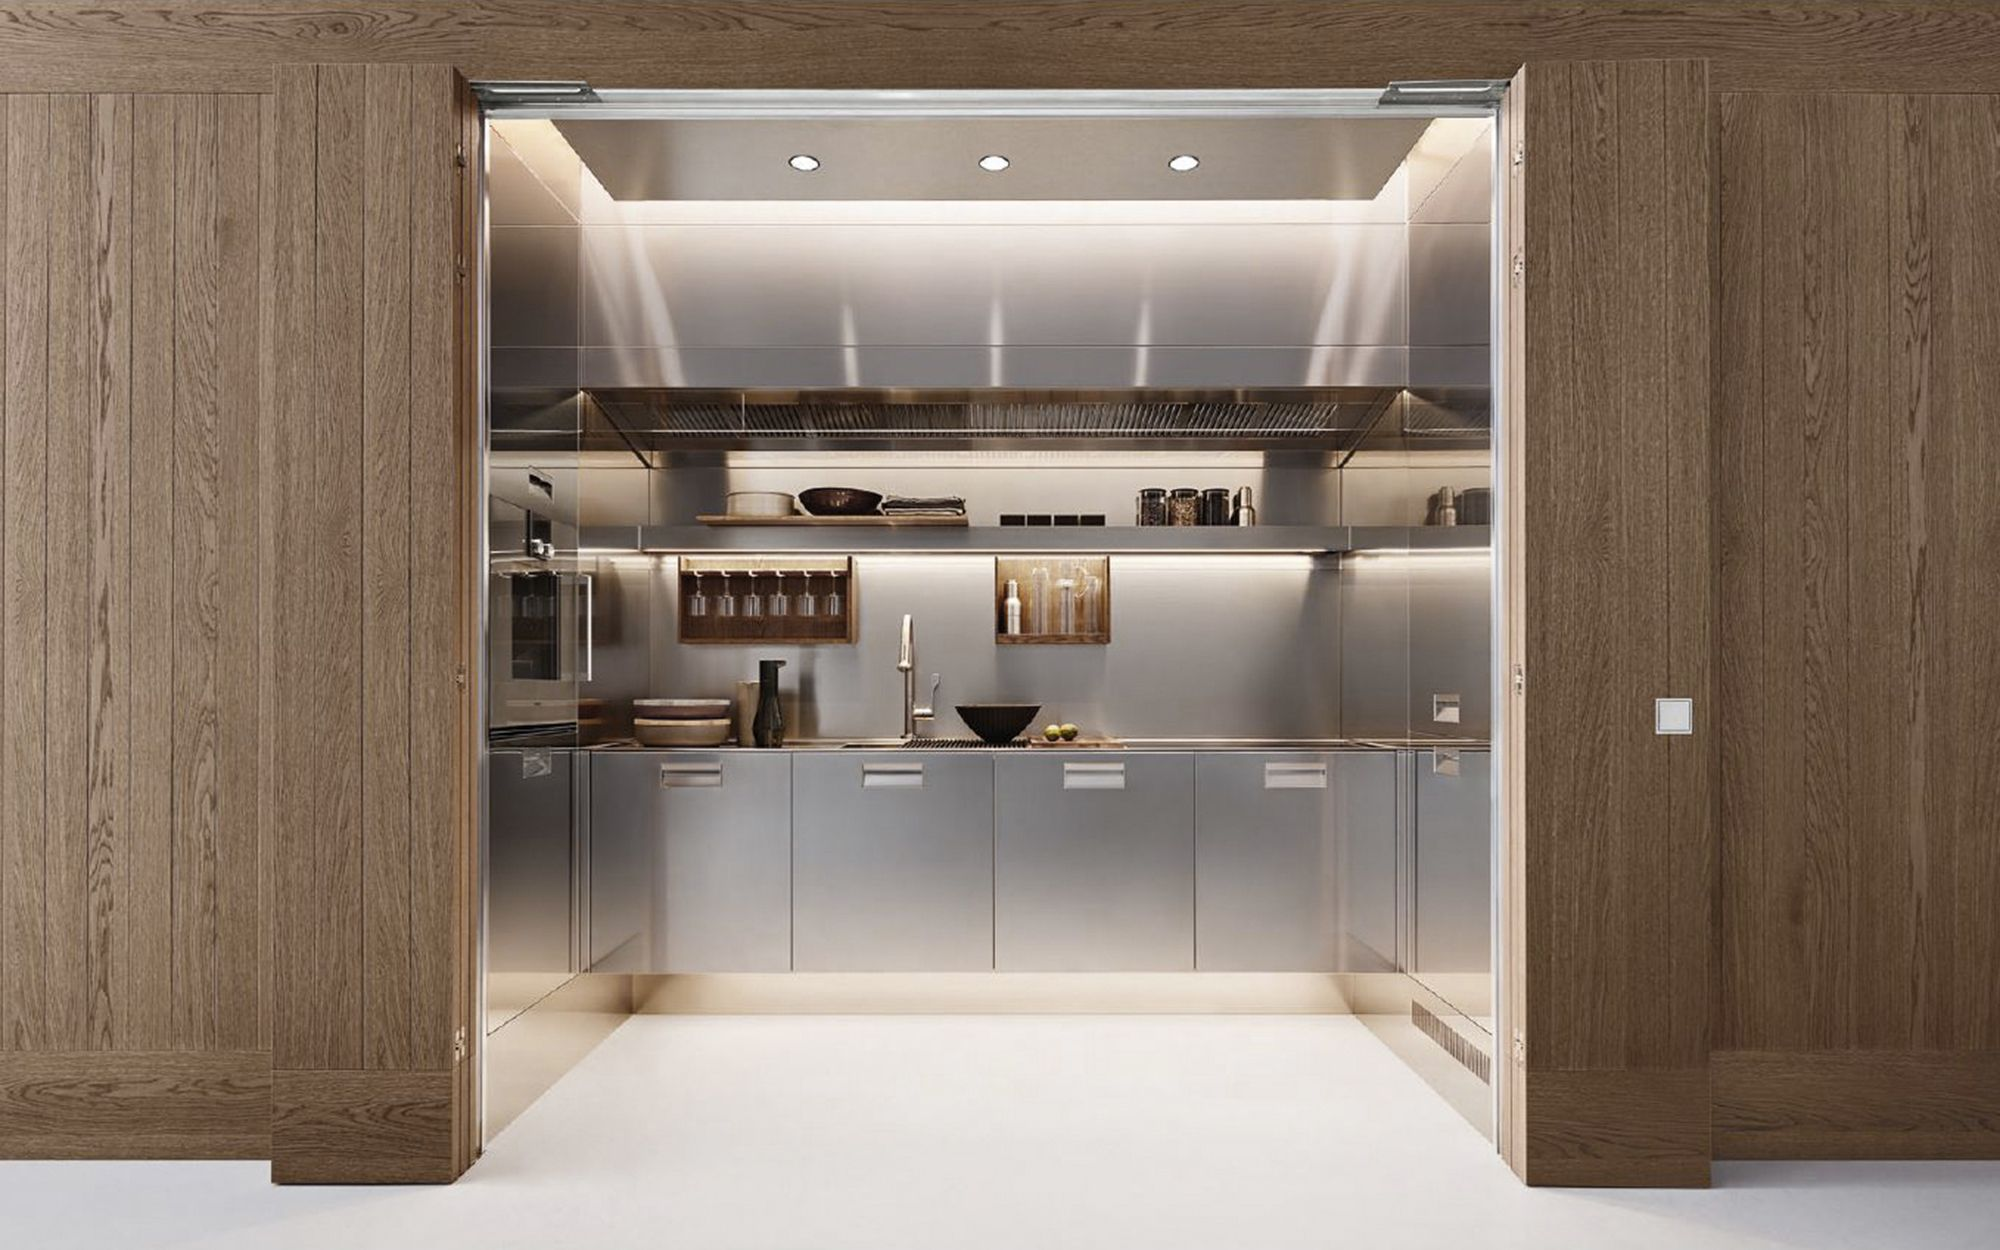 KITCHENS | Tradition with Innovation